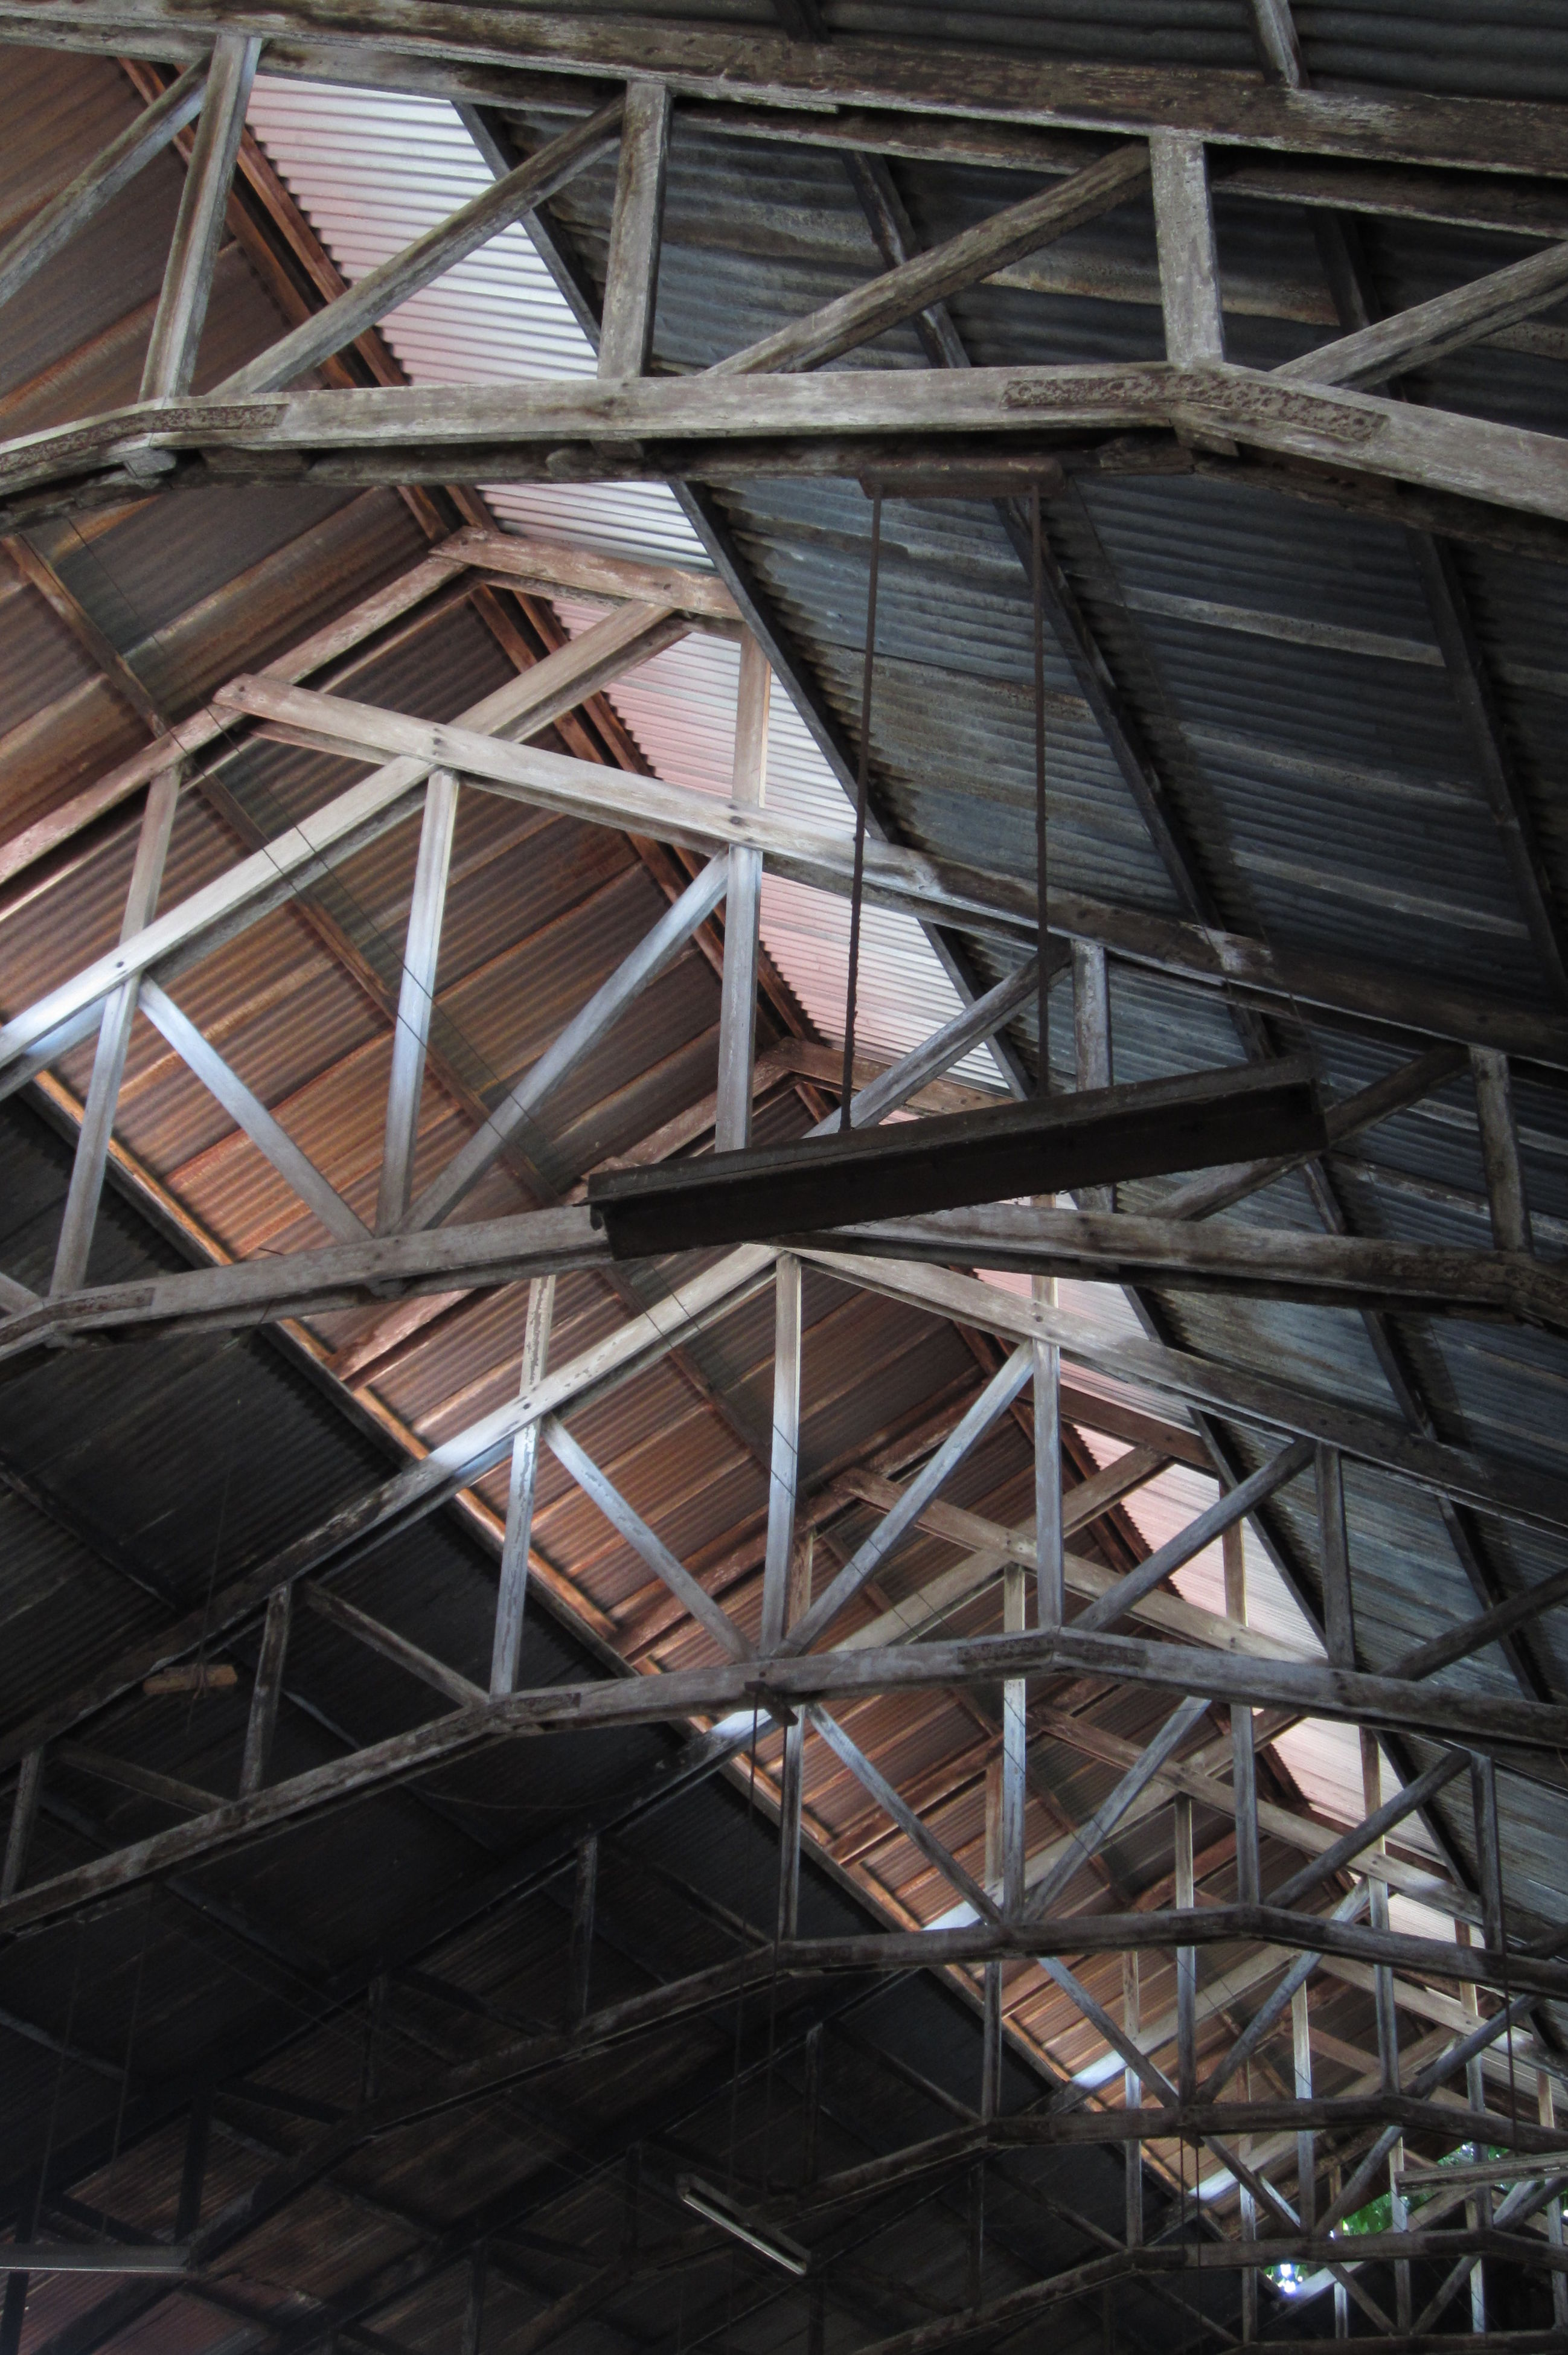 built structure, architecture, pattern, metal, building exterior, low angle view, no people, day, outdoors